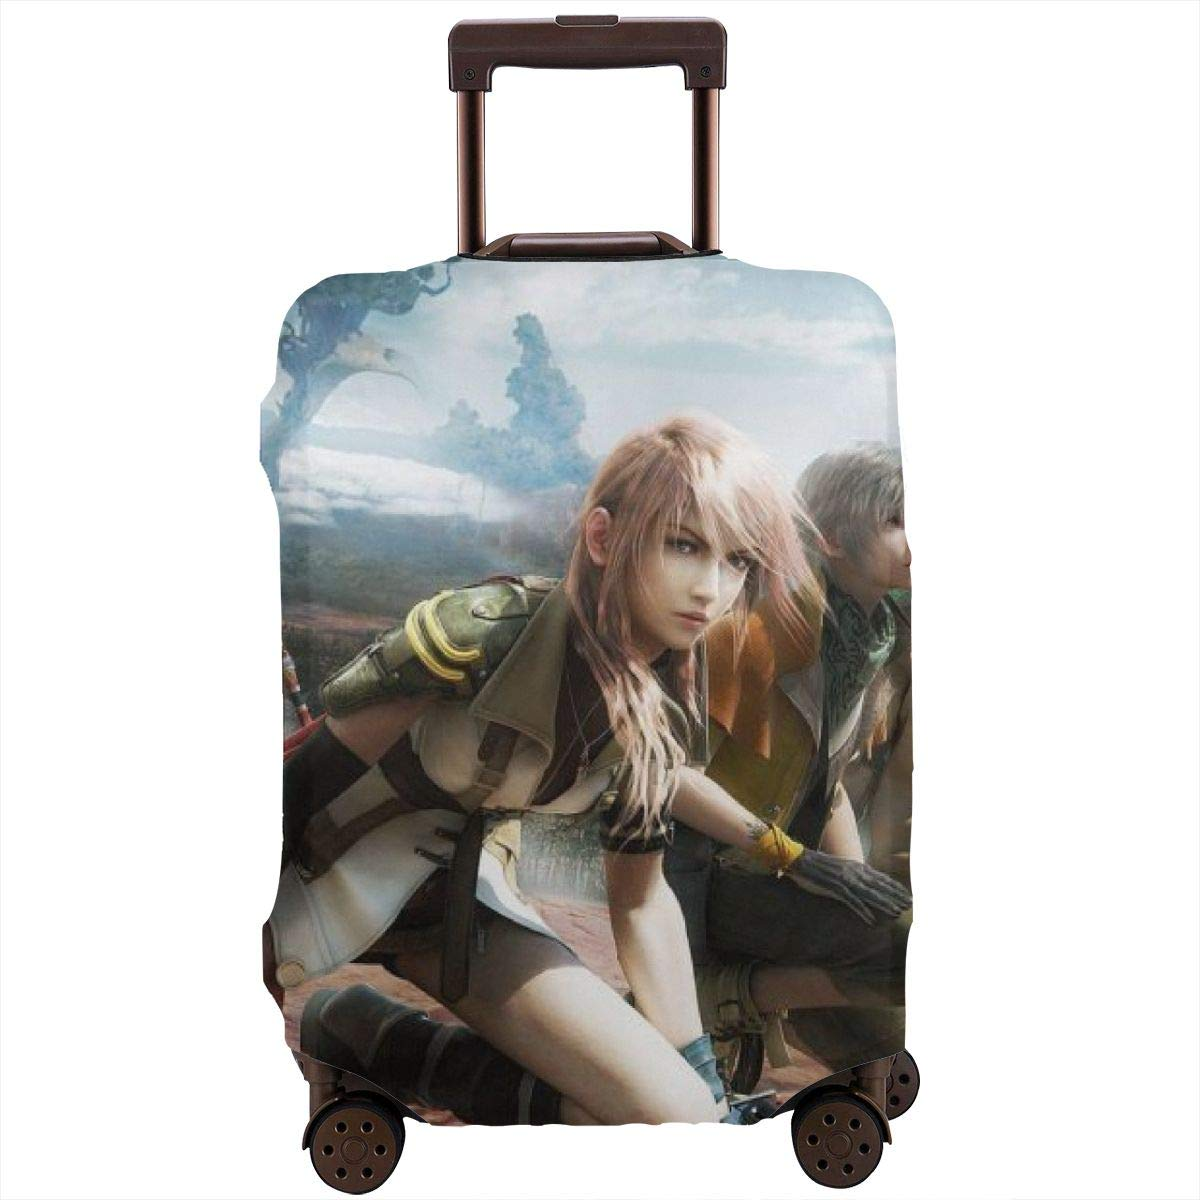 Naruto Anime Suitcase Protector Travel Luggage Cover Fit